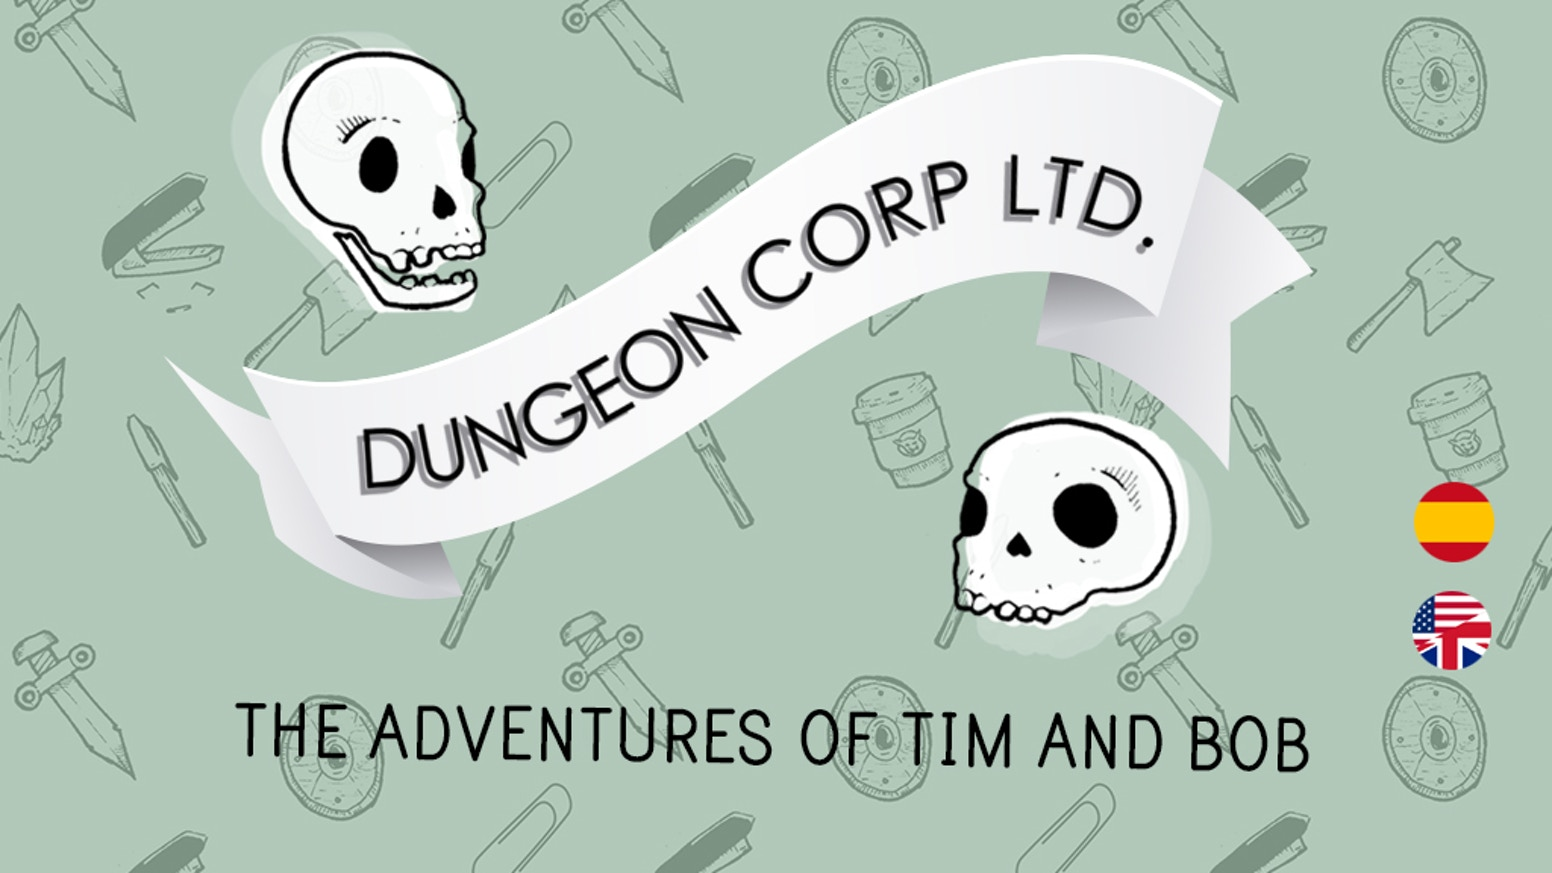 Welcome to Dungeon Corp LTD, a Dungeons and Dragons humoristic comic book with a Make/100 exclusive reward.